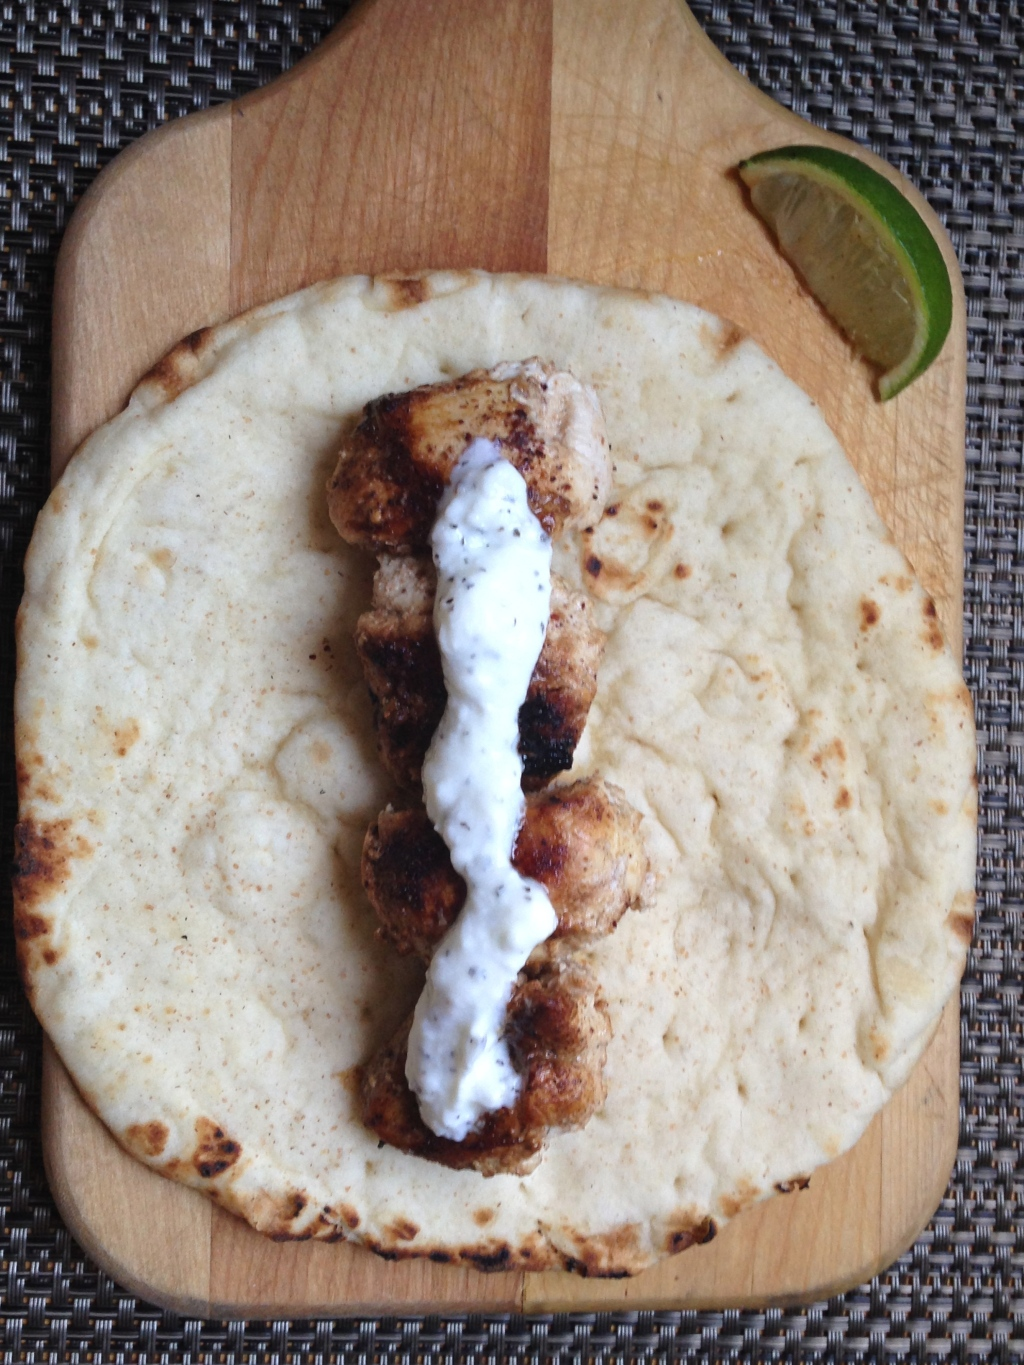 Kebab on flatbread